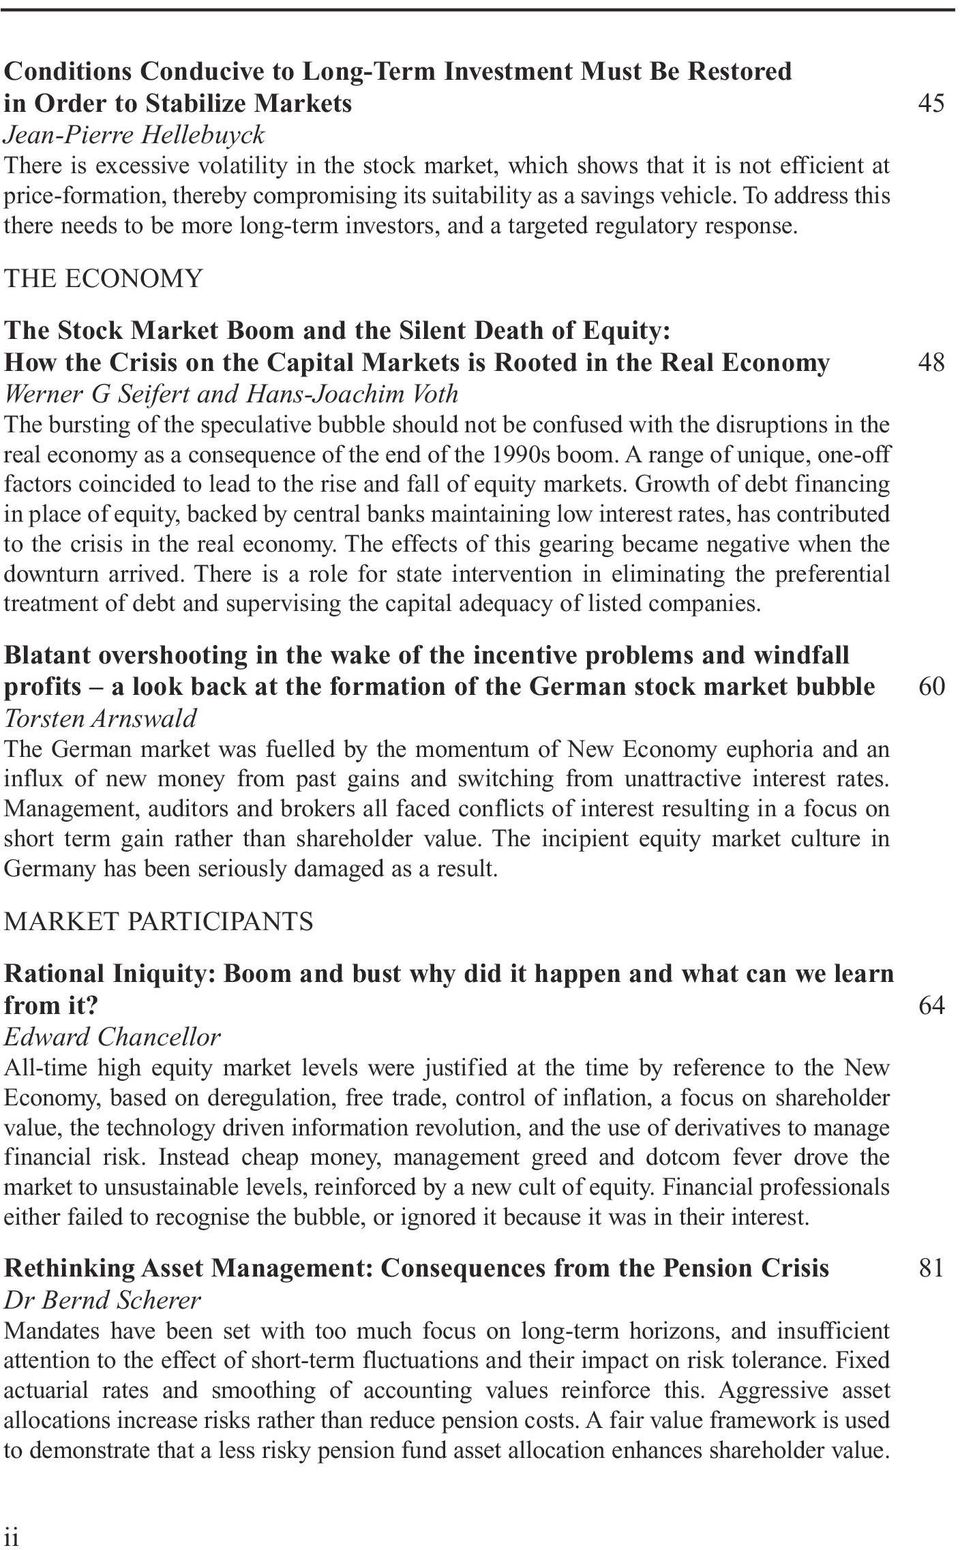 THE ECONOMY The Stock Market Boom and the Silent Death of Equity: How the Crisis on the Capital Markets is Rooted in the Real Economy 48 Werner G Seifert and Hans-Joachim Voth The bursting of the